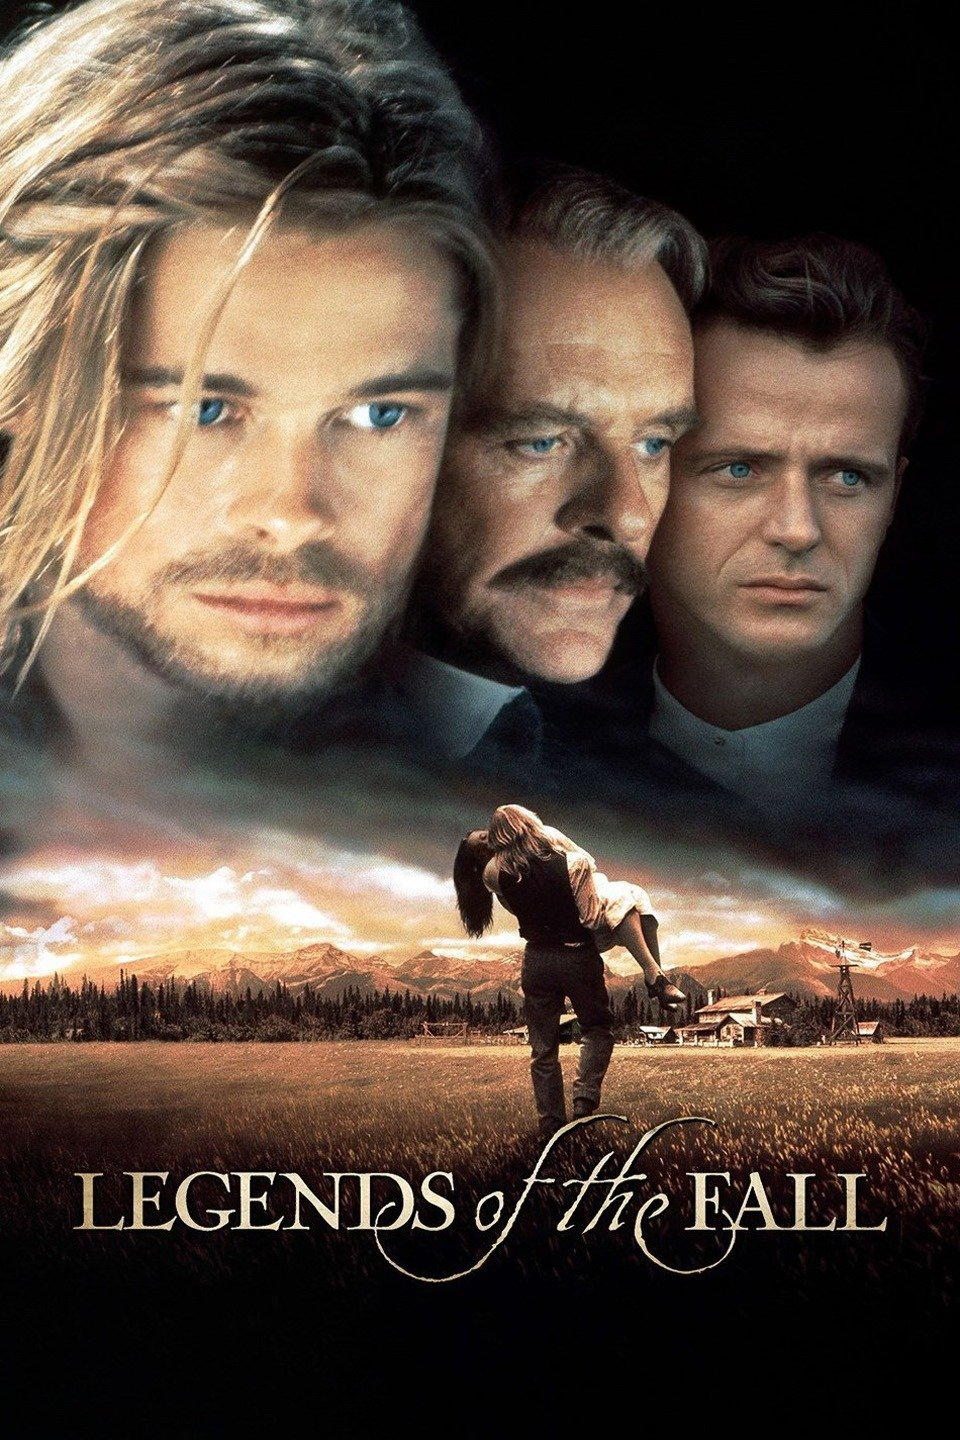 Legends of the Fall-Legends of the Fall